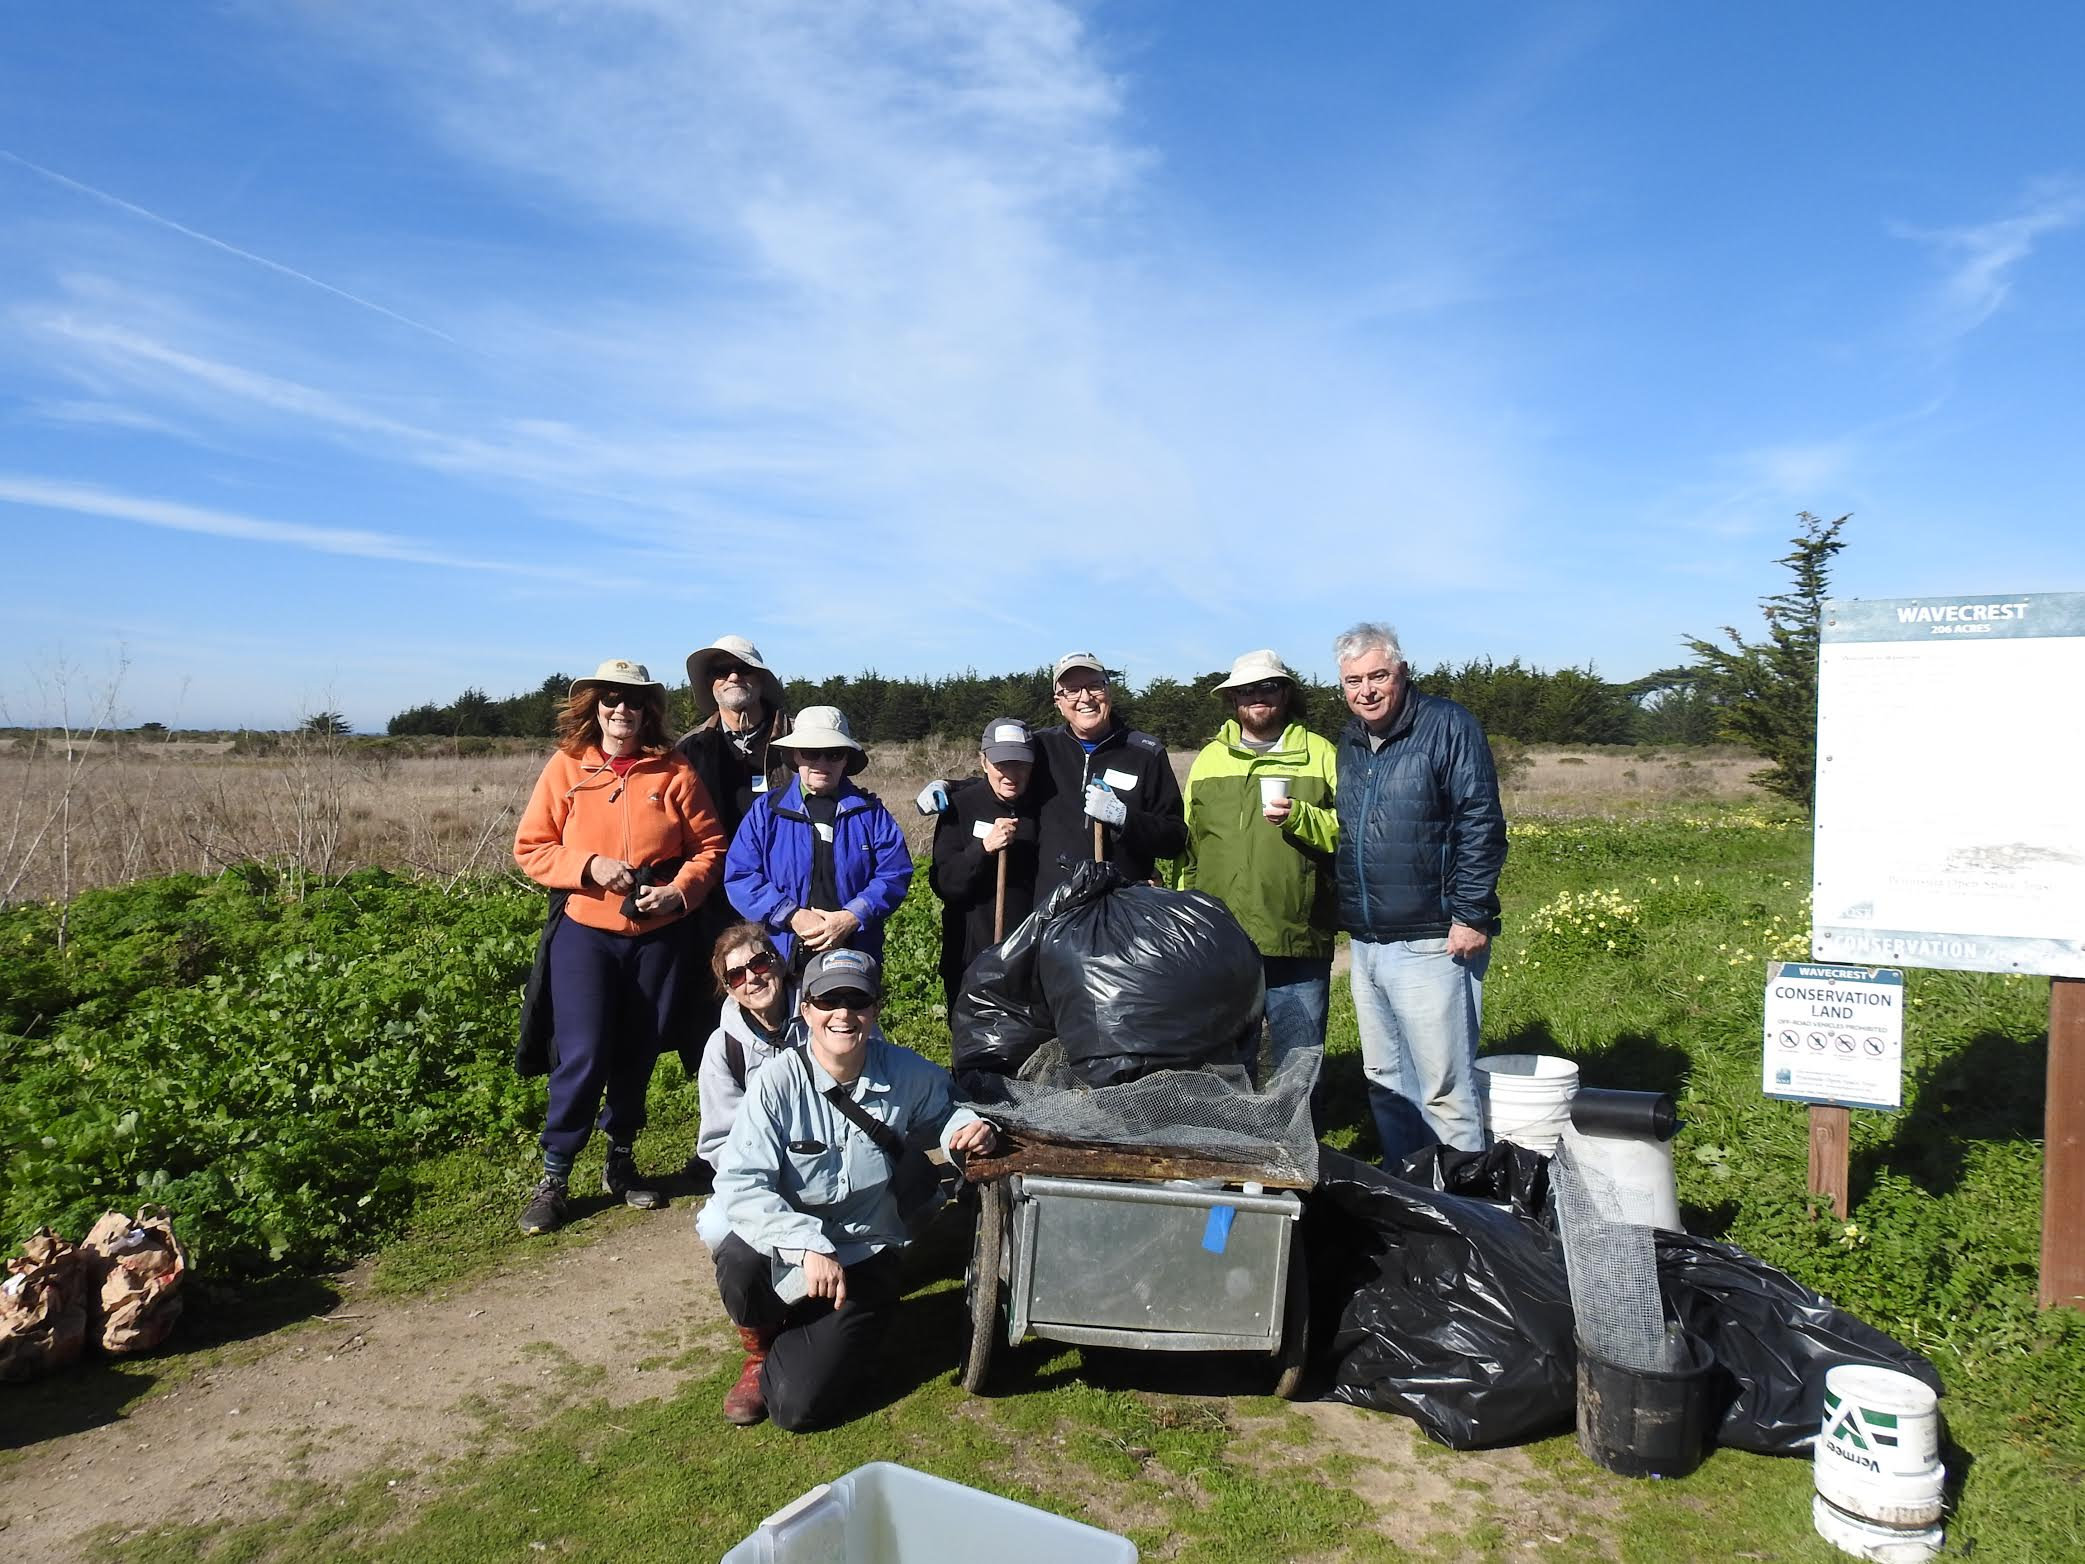 Volunteers pose with trash and invasive species removed from the Wavecrest property.